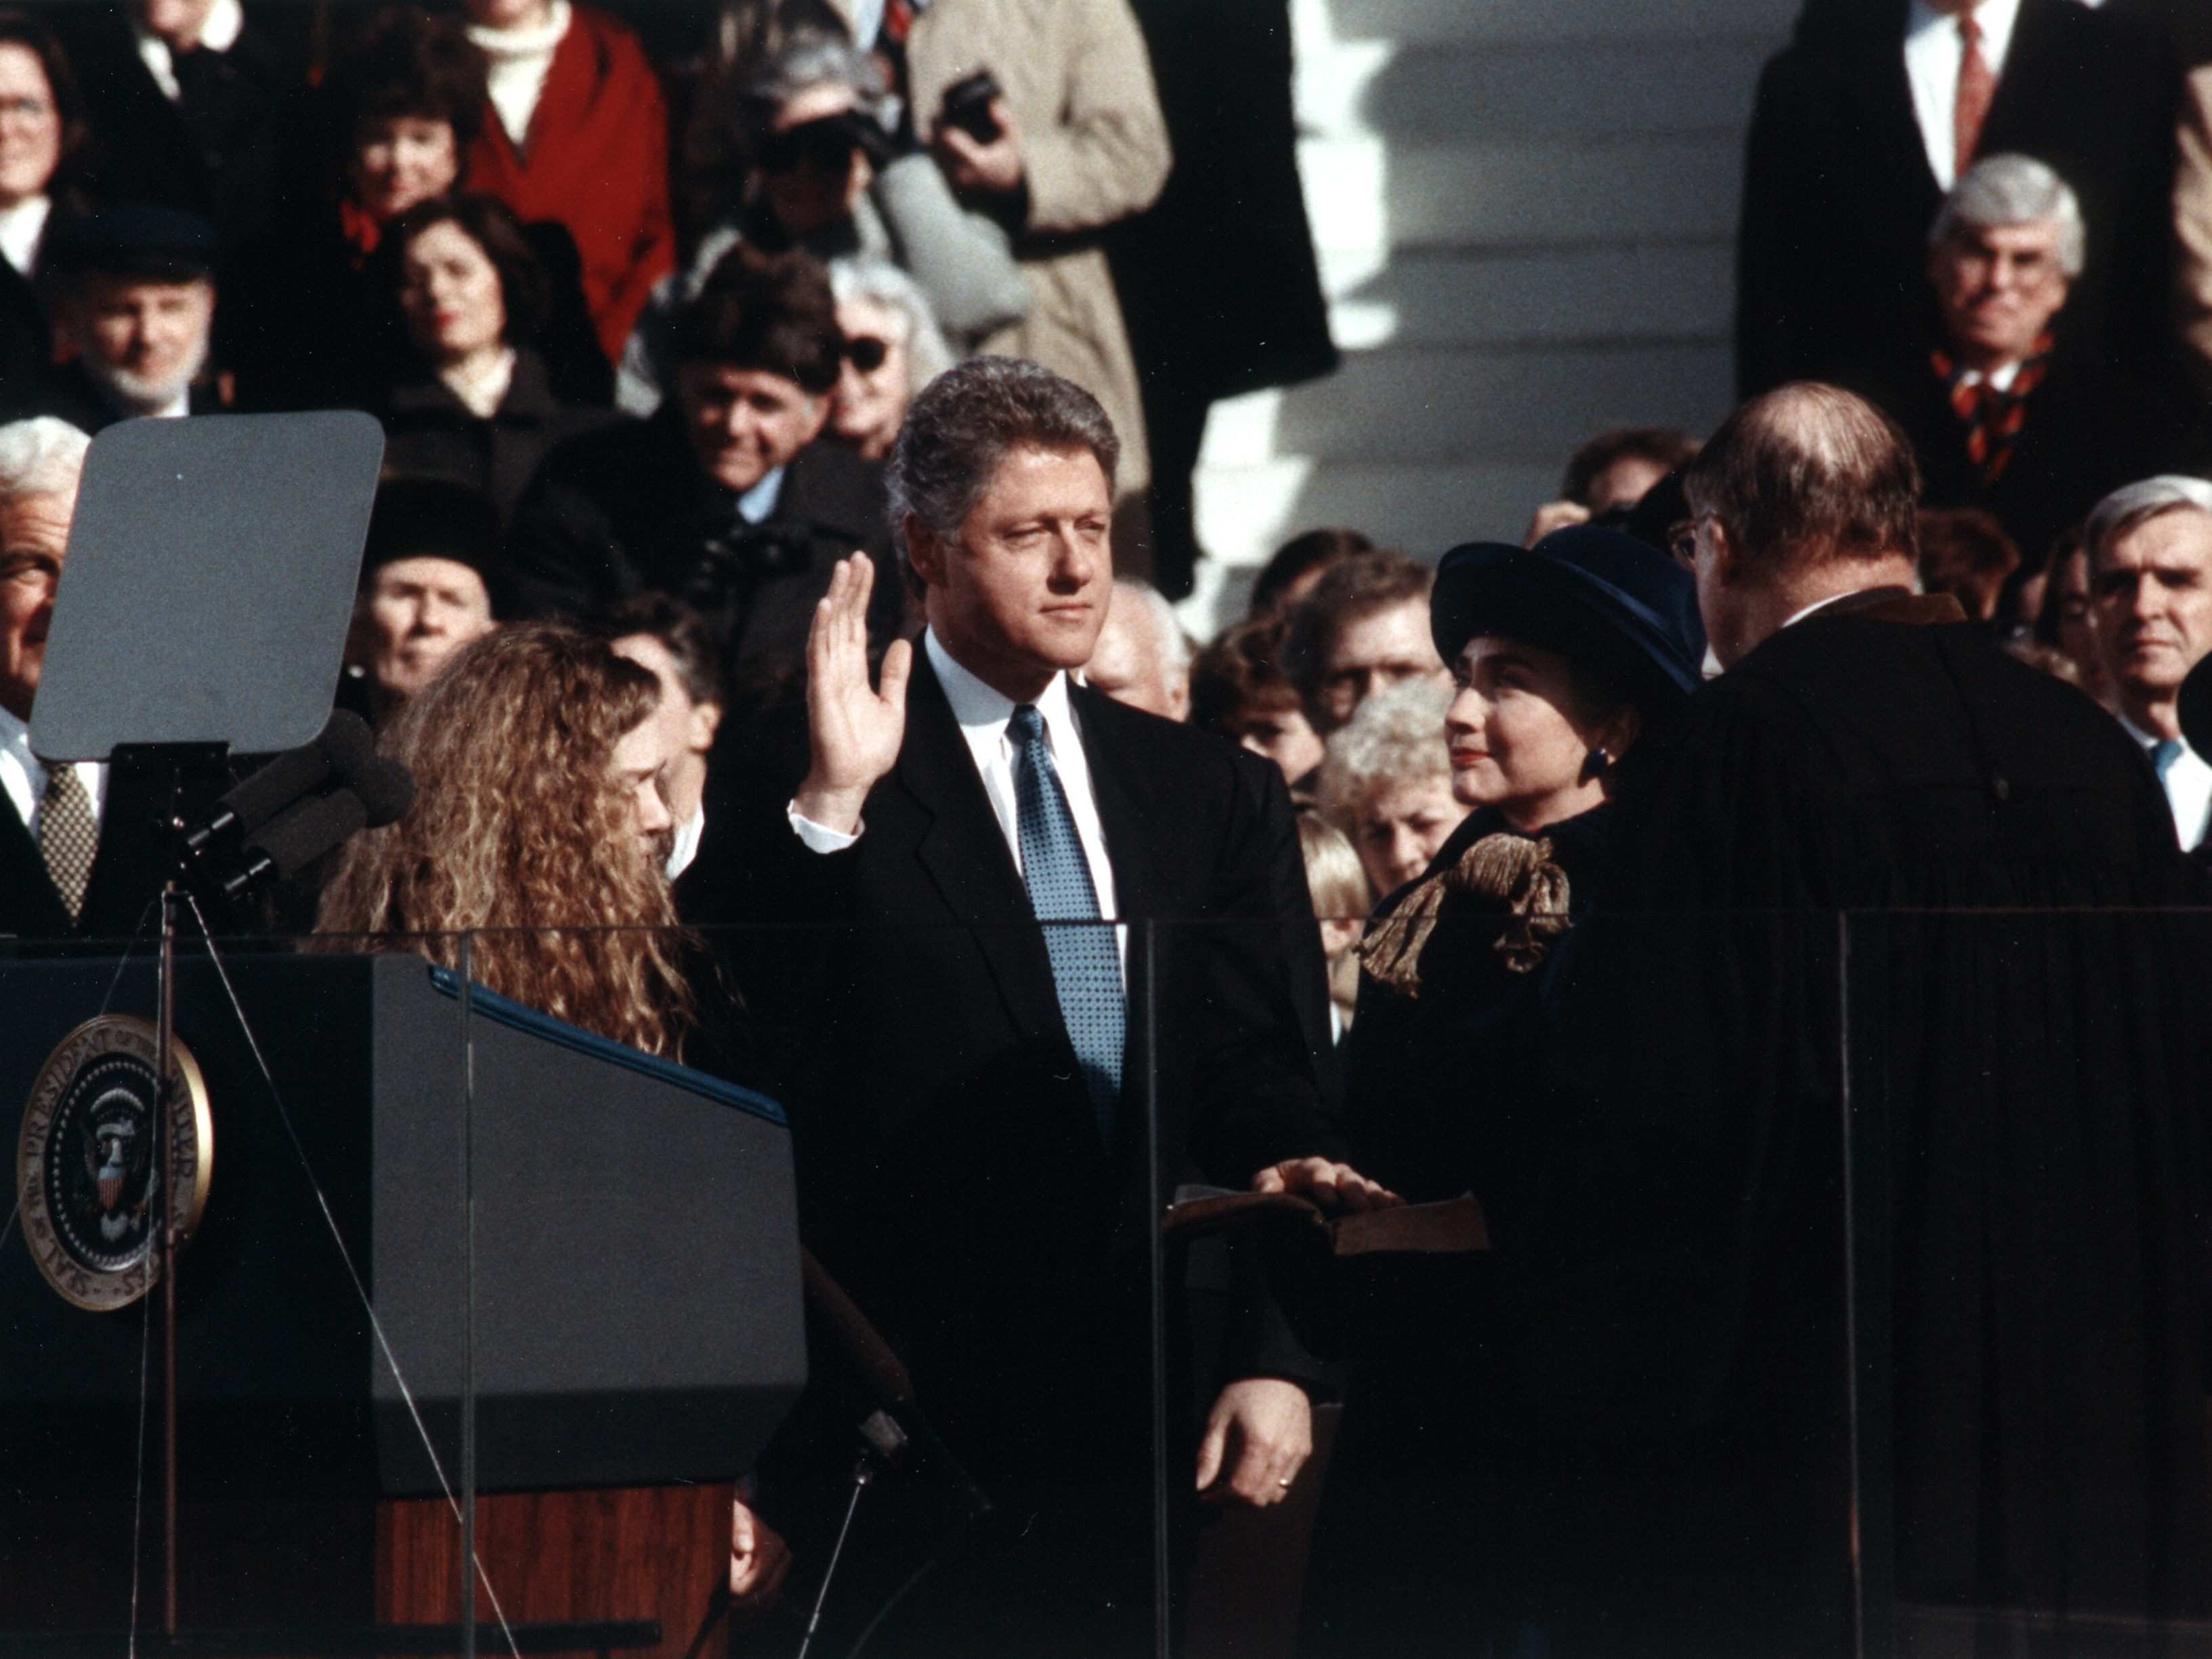 File:Bill Clinton taking the oath of office, 1993 (cropped).jpg